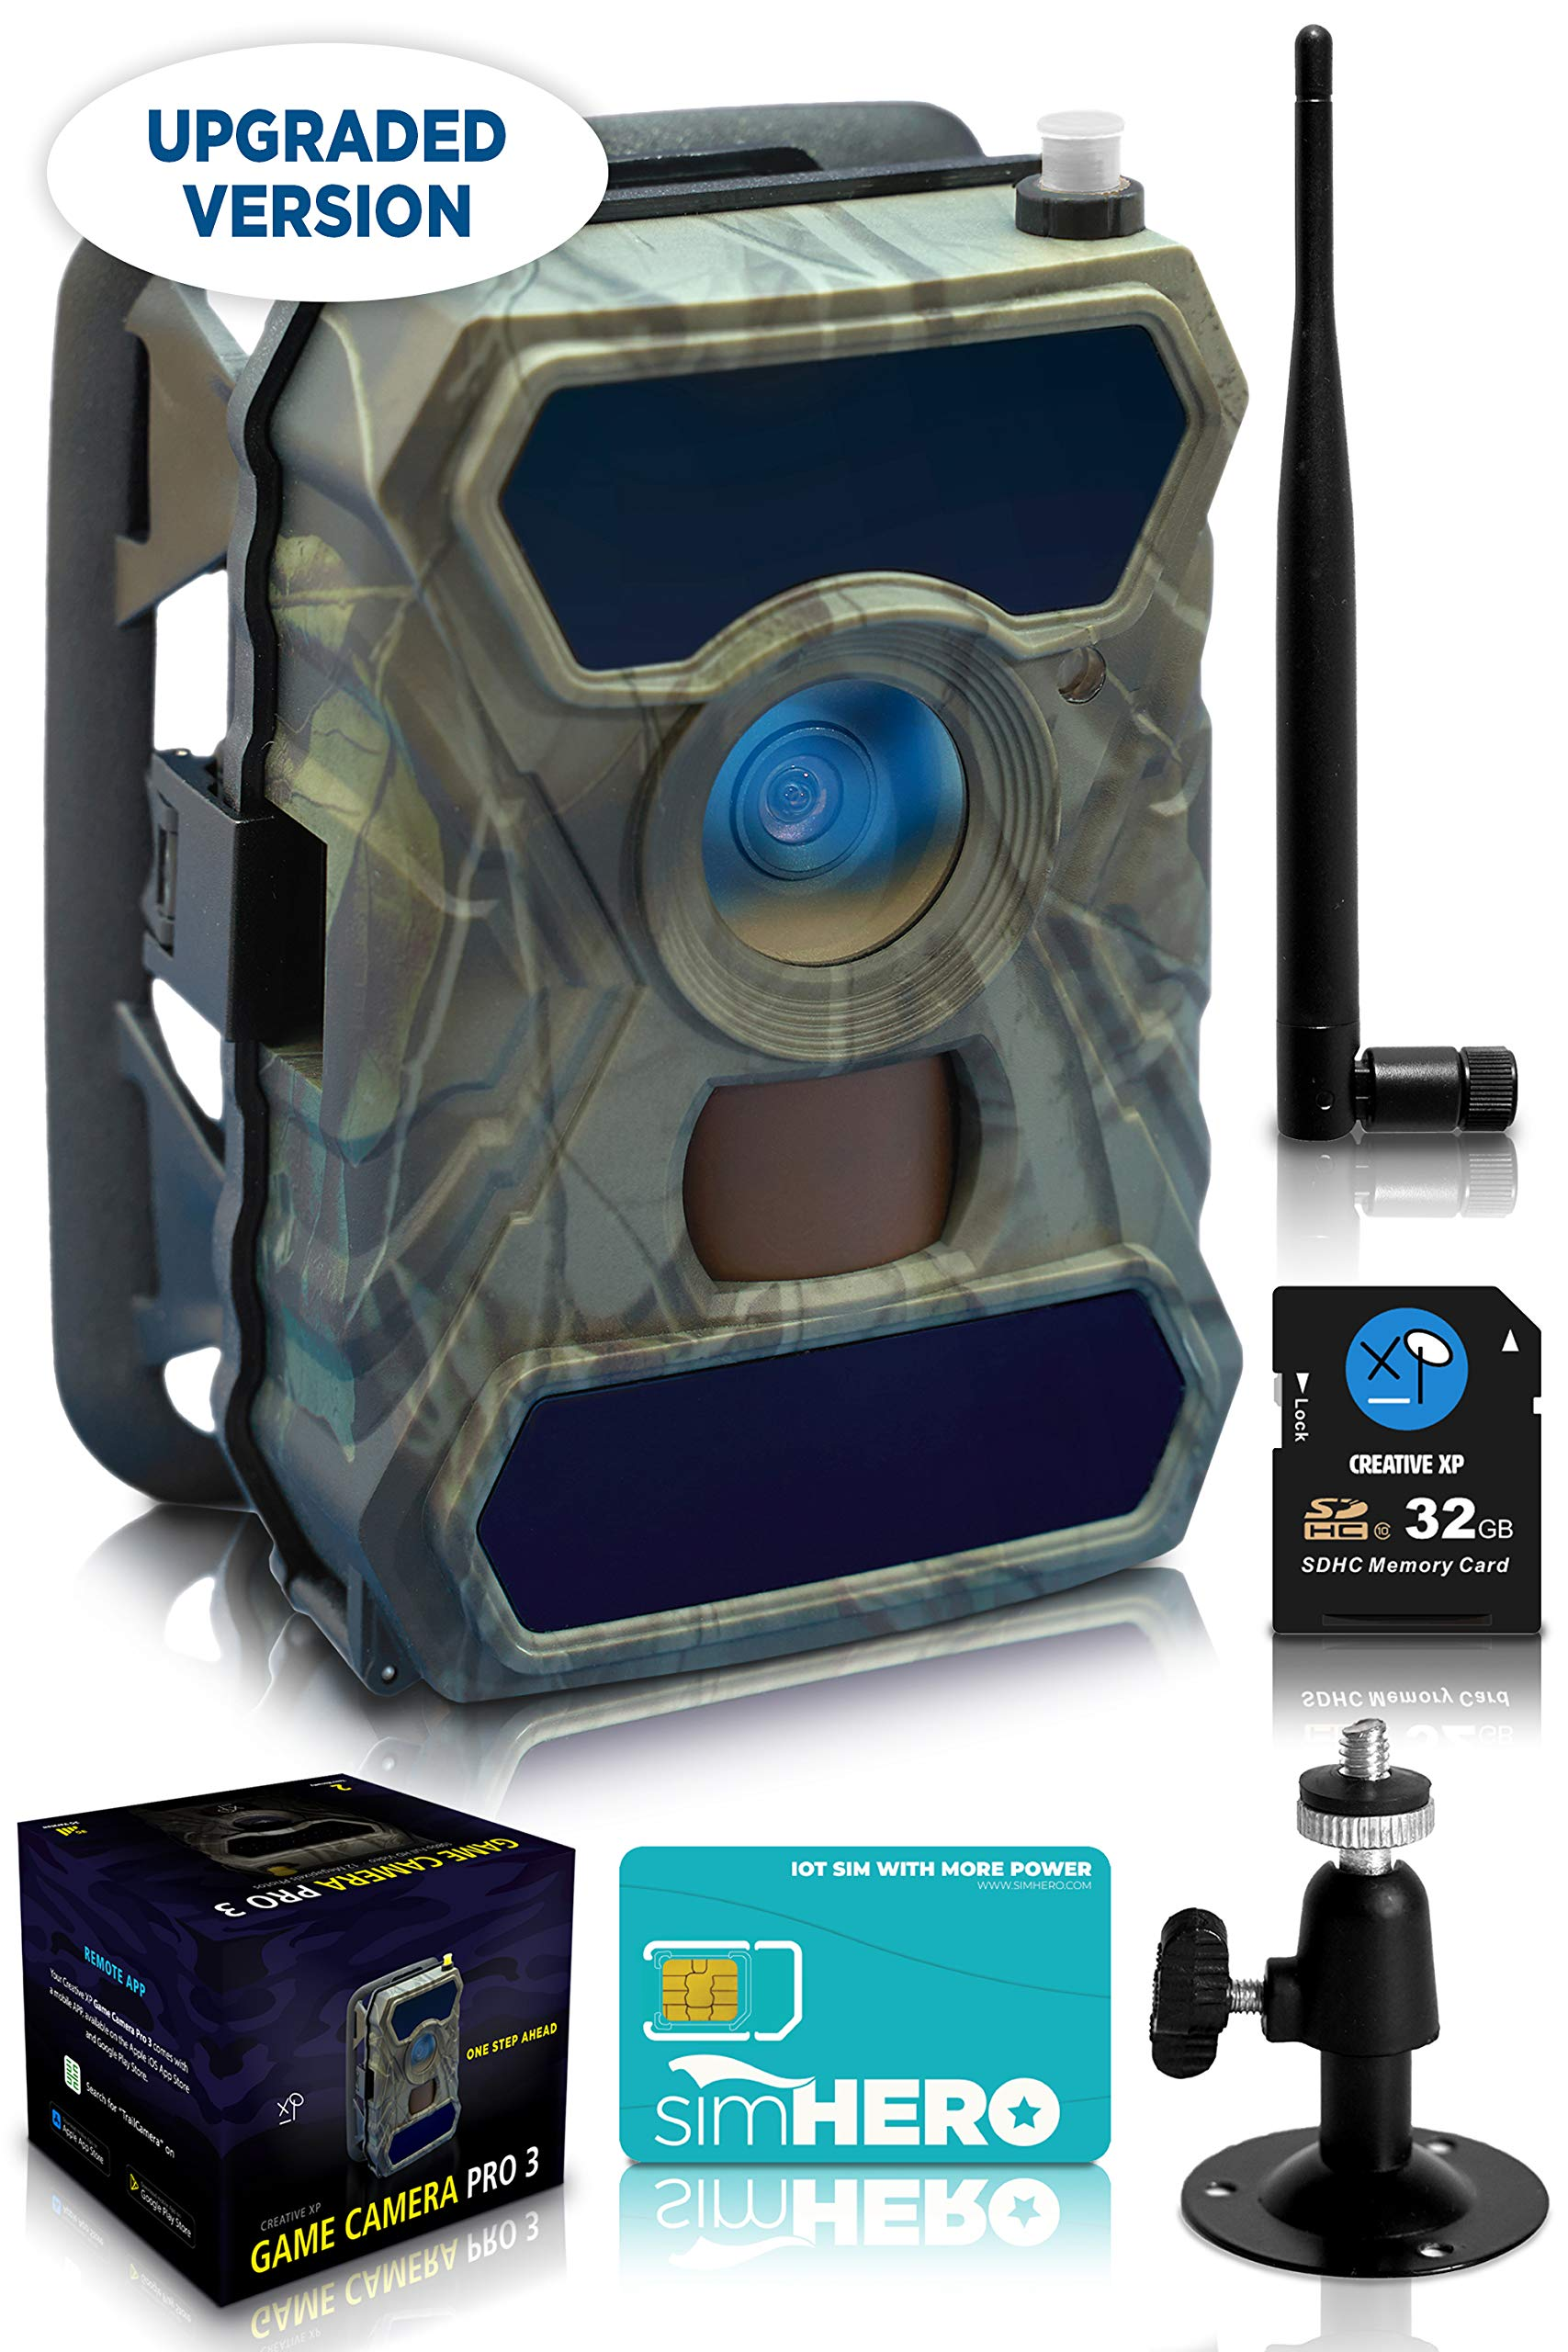 CreativeXP 3G Cellular Trail Cameras - AT&T WiFi Full HD Wild Game Camera with Night Vision for Deer Hunting, Security - Wireless Waterproof and Motion Activated - Tree Mount Included (1-Pack) by CreativeXP